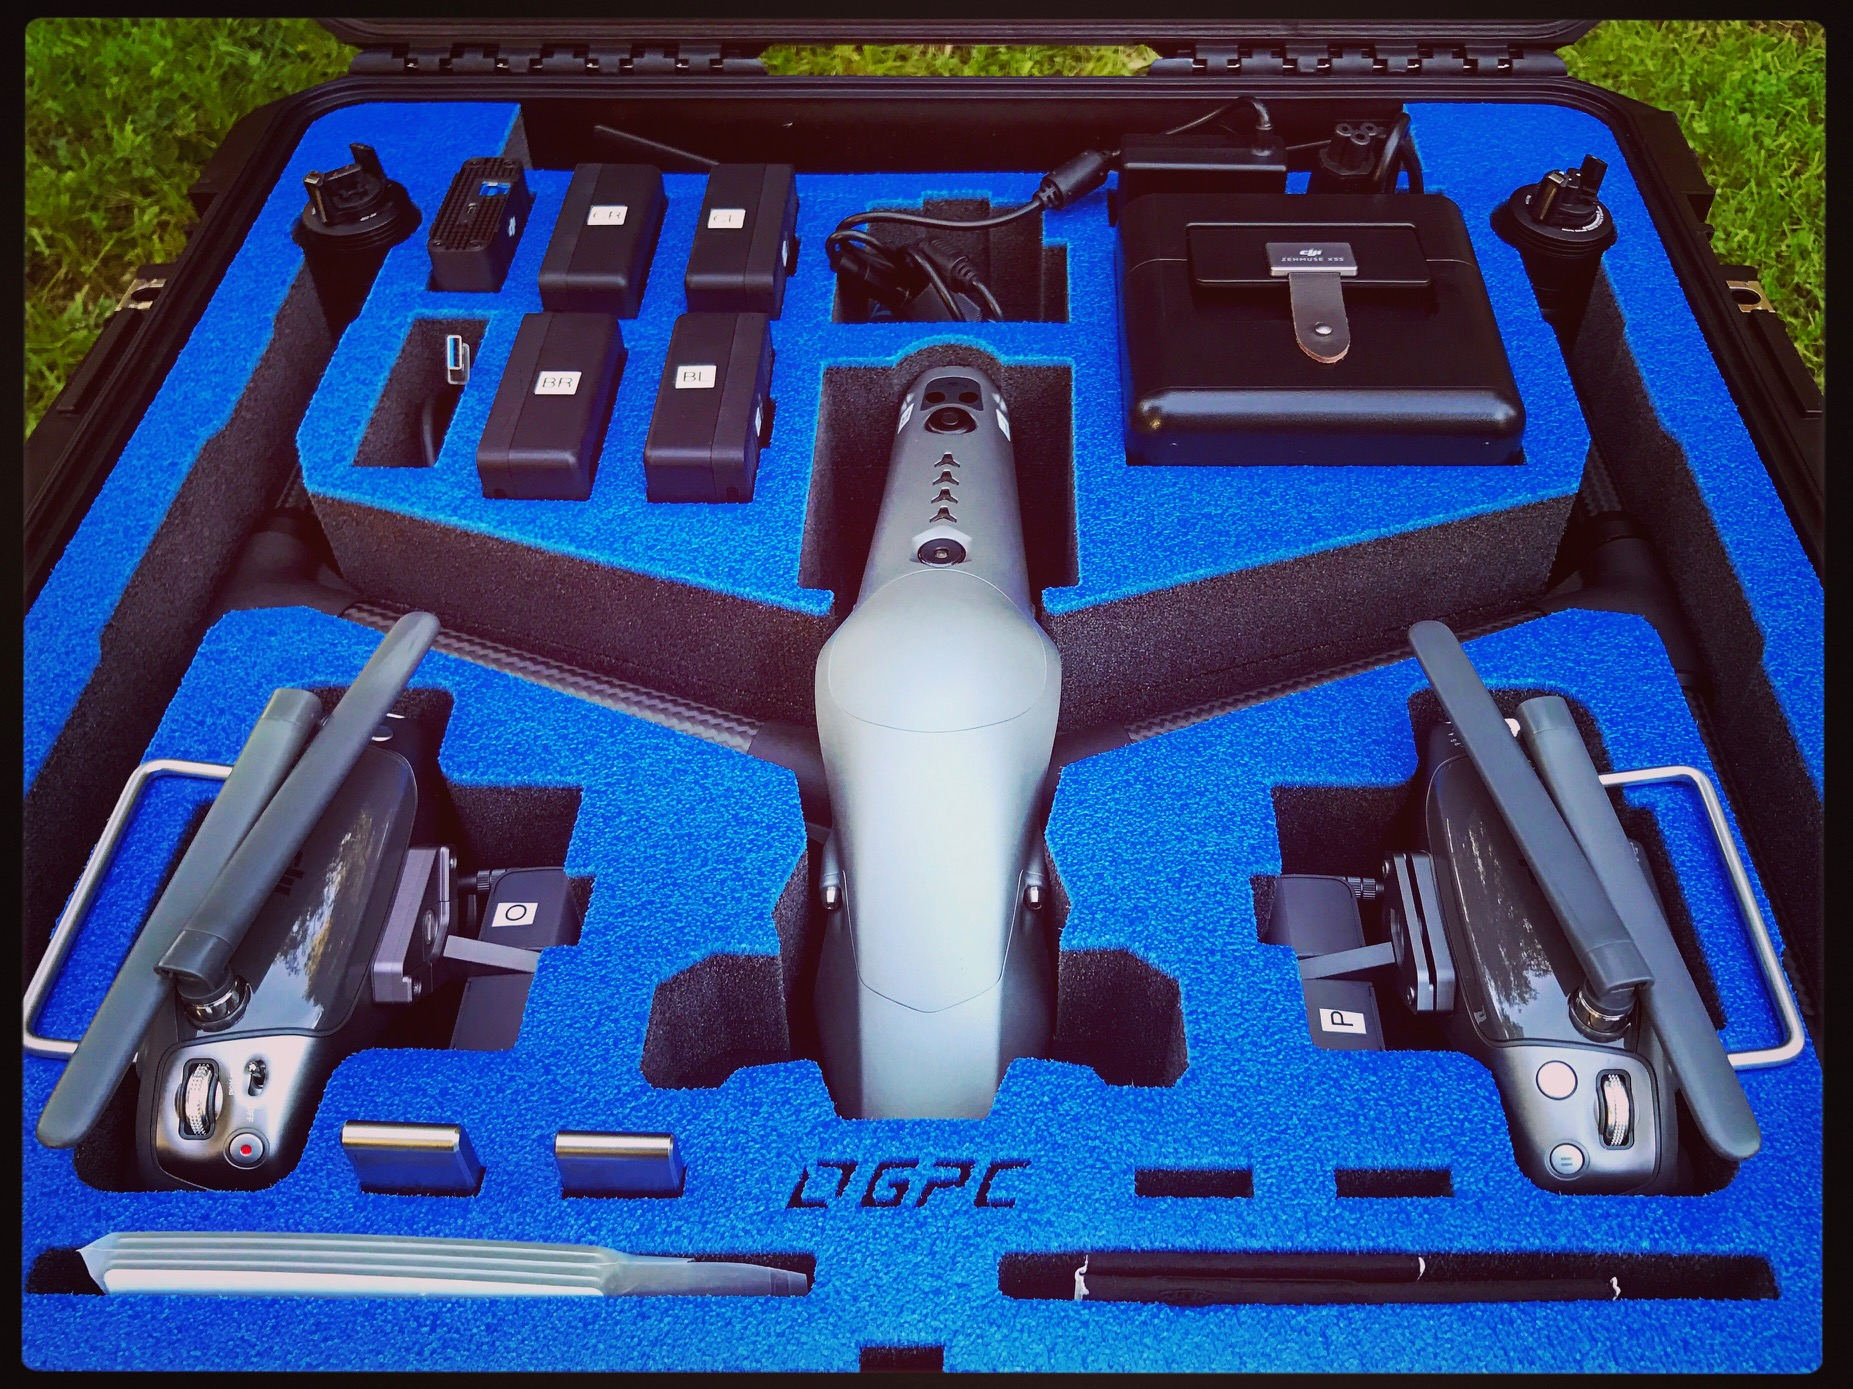 Review Gpc Travel Mode Case For Dji Inspire 2 The Society Of